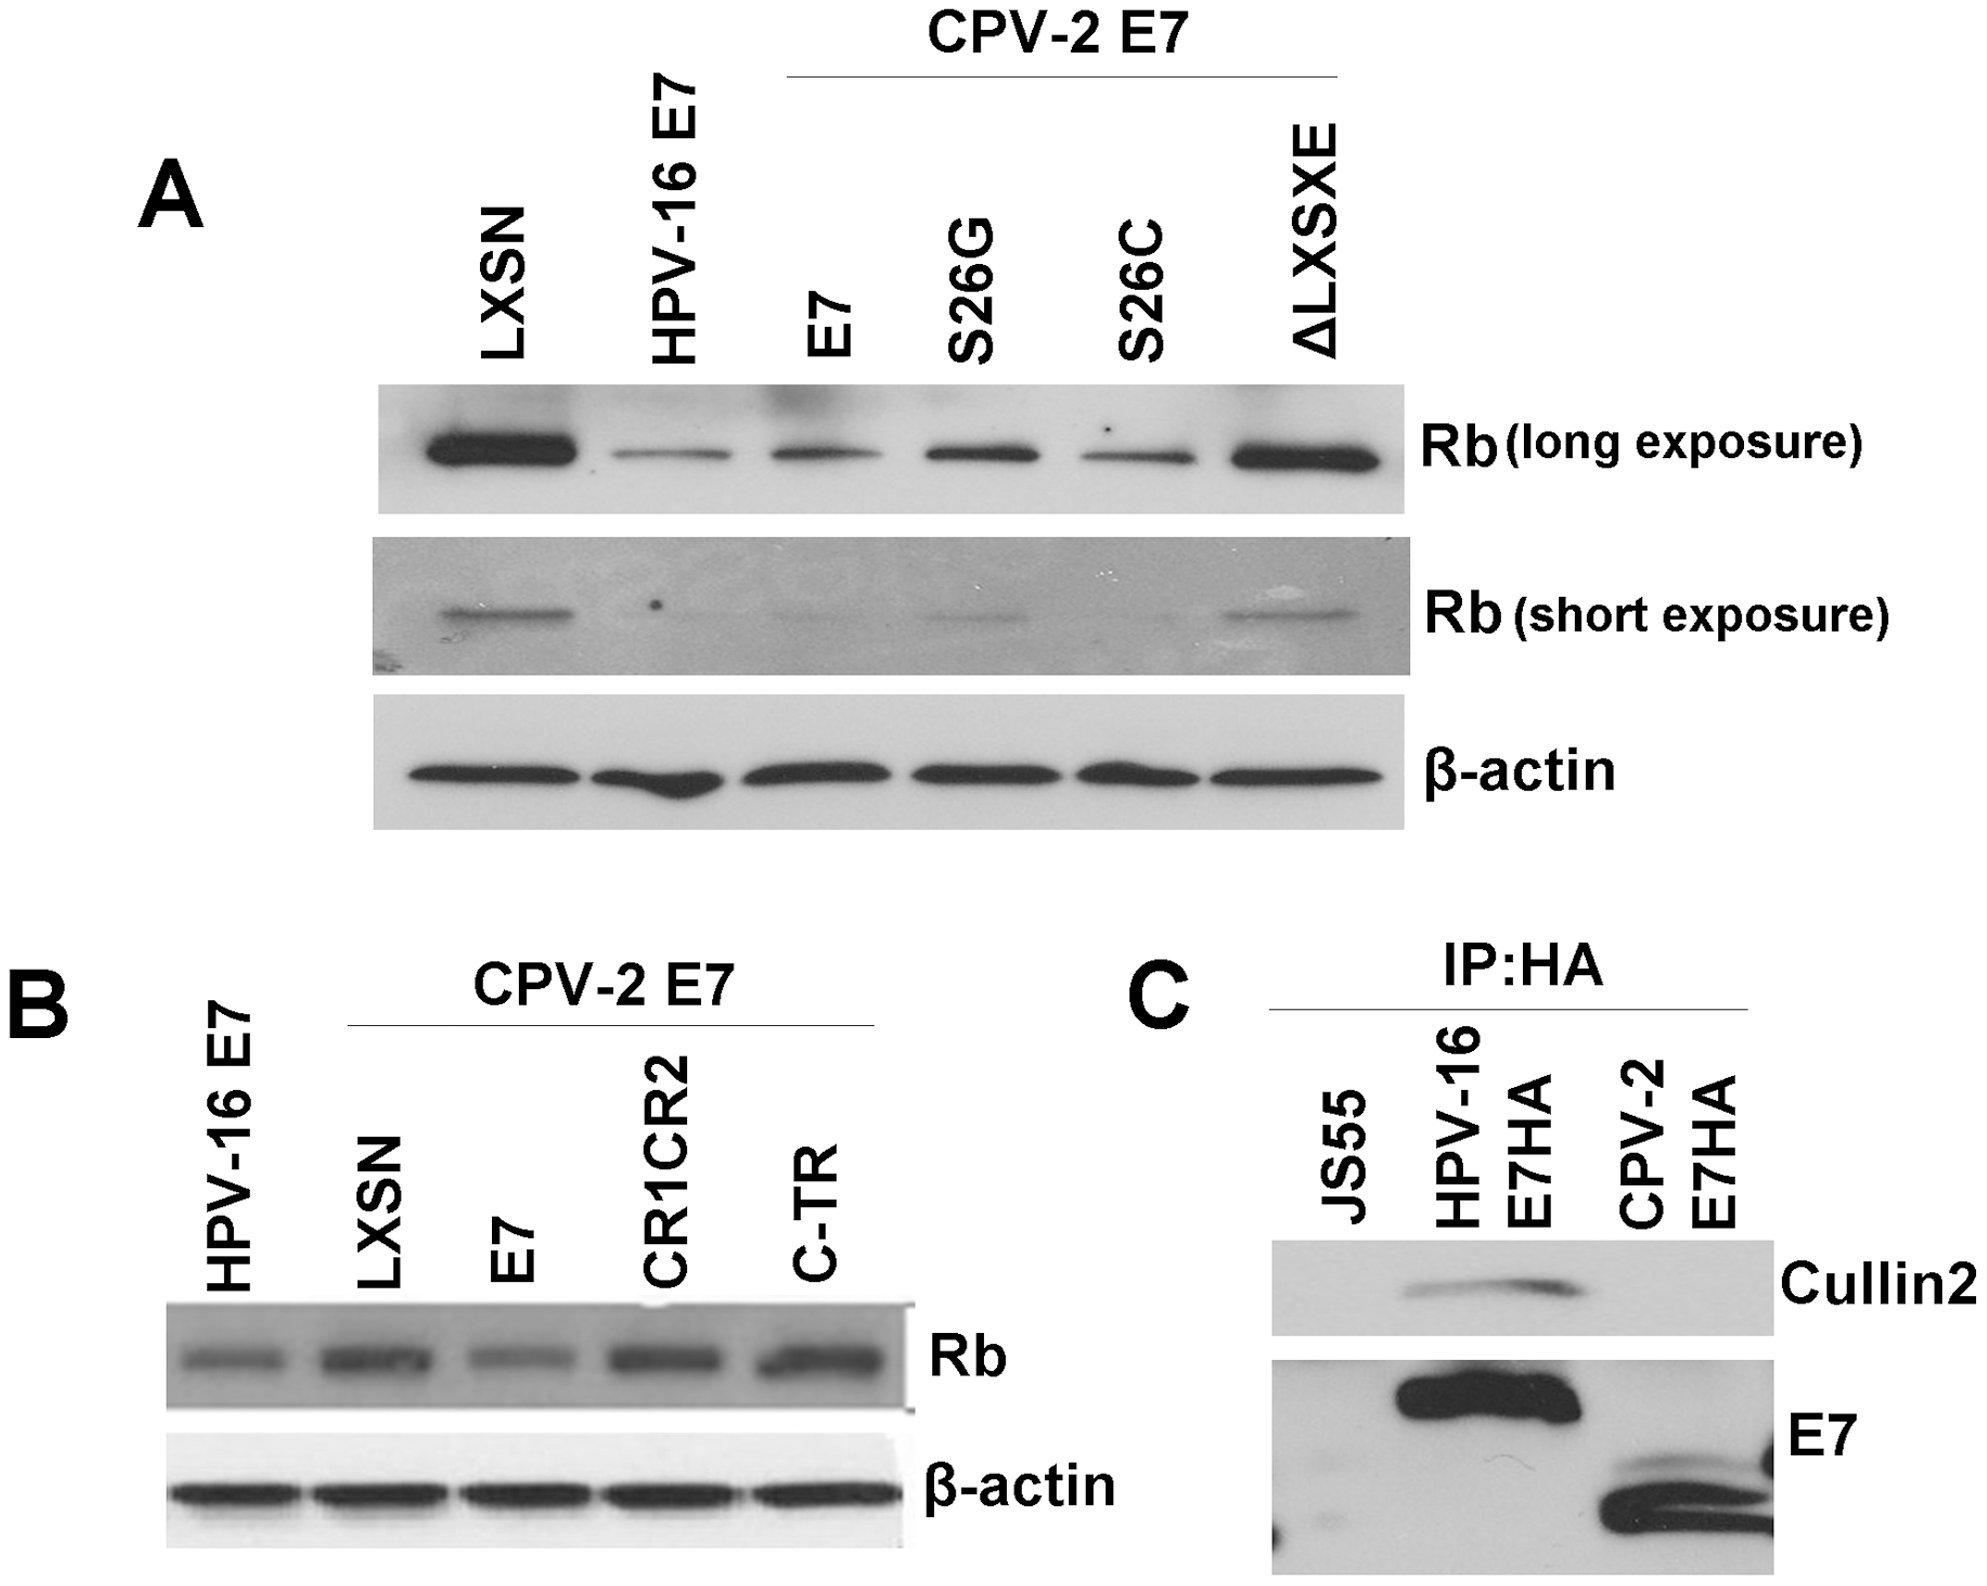 Although not the primary binding site, the canine E7 amino-terminal domain of CPV-2 E7 is important for destabilization of pRb.